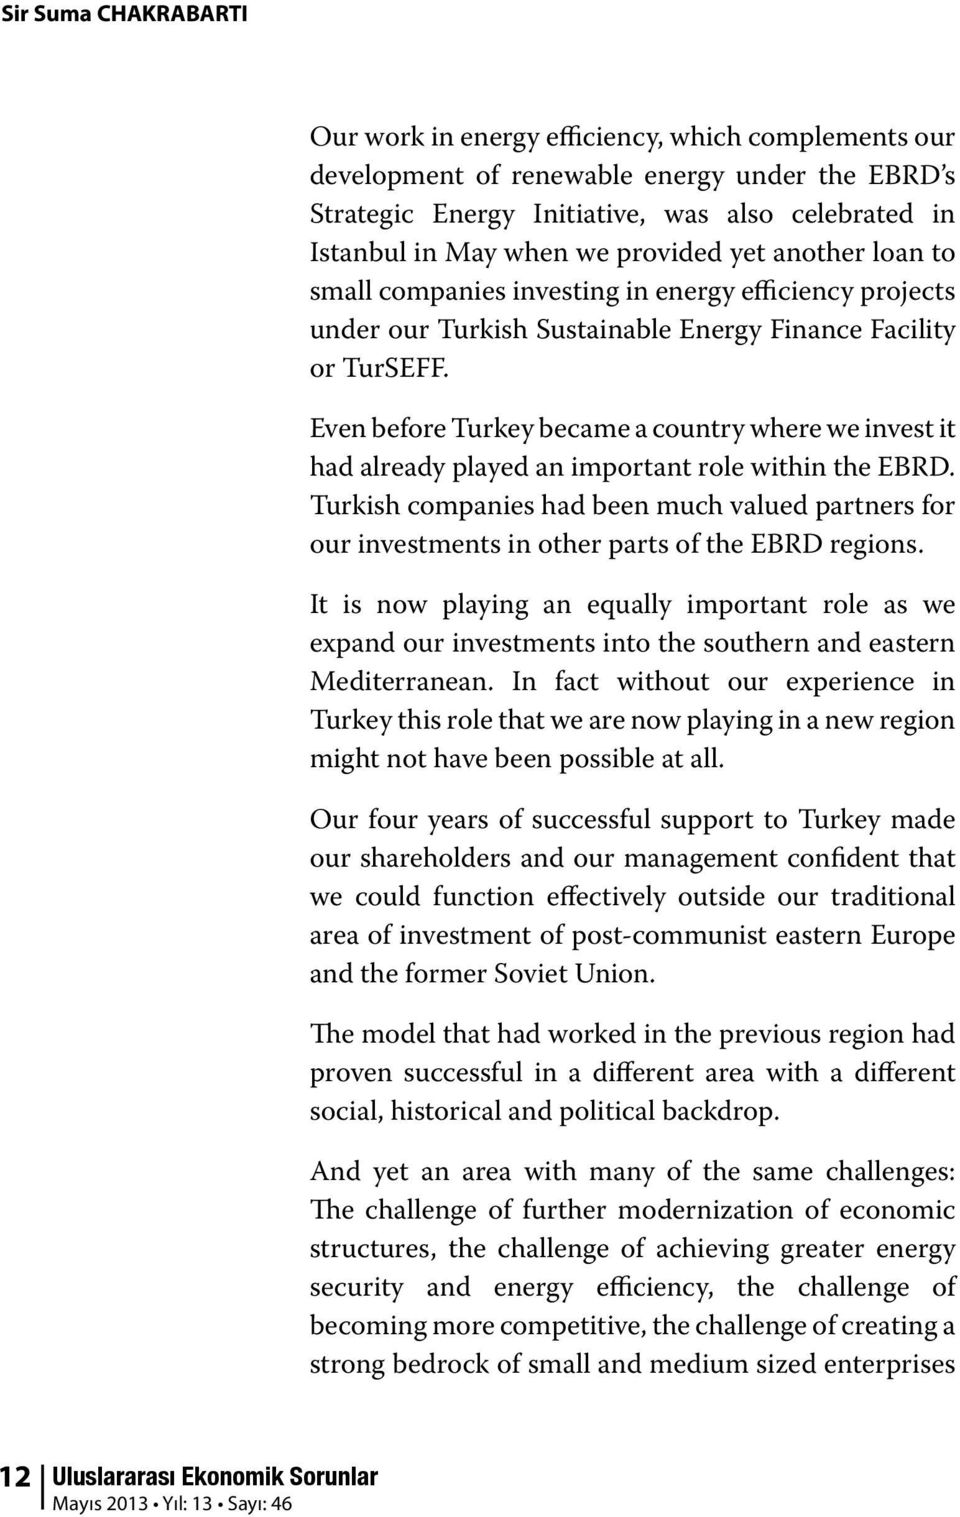 Even before Turkey became a country where we invest it had already played an important role within the EBRD.